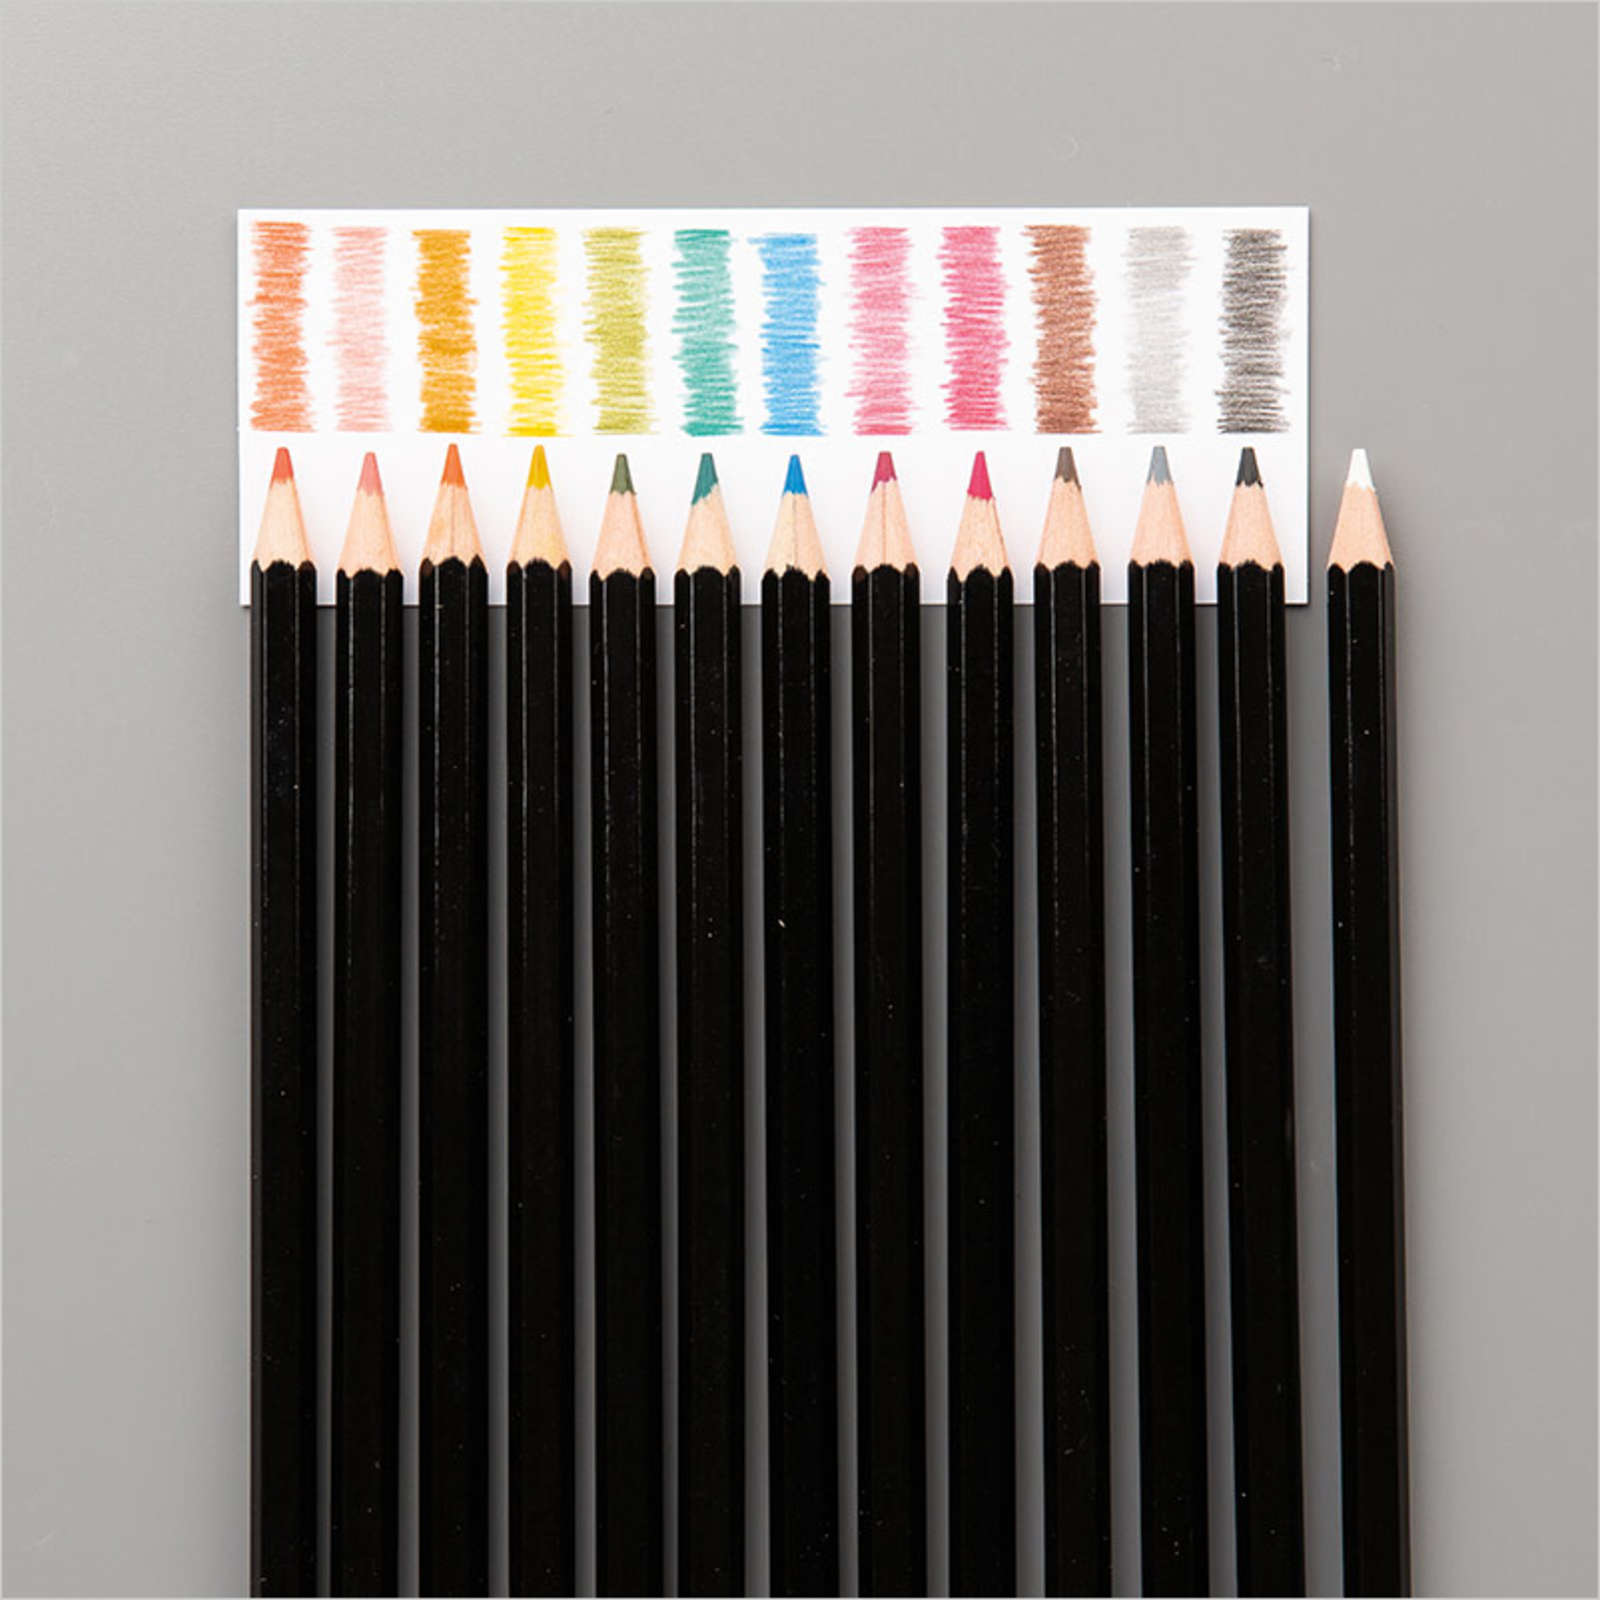 141709 watercolor pencils